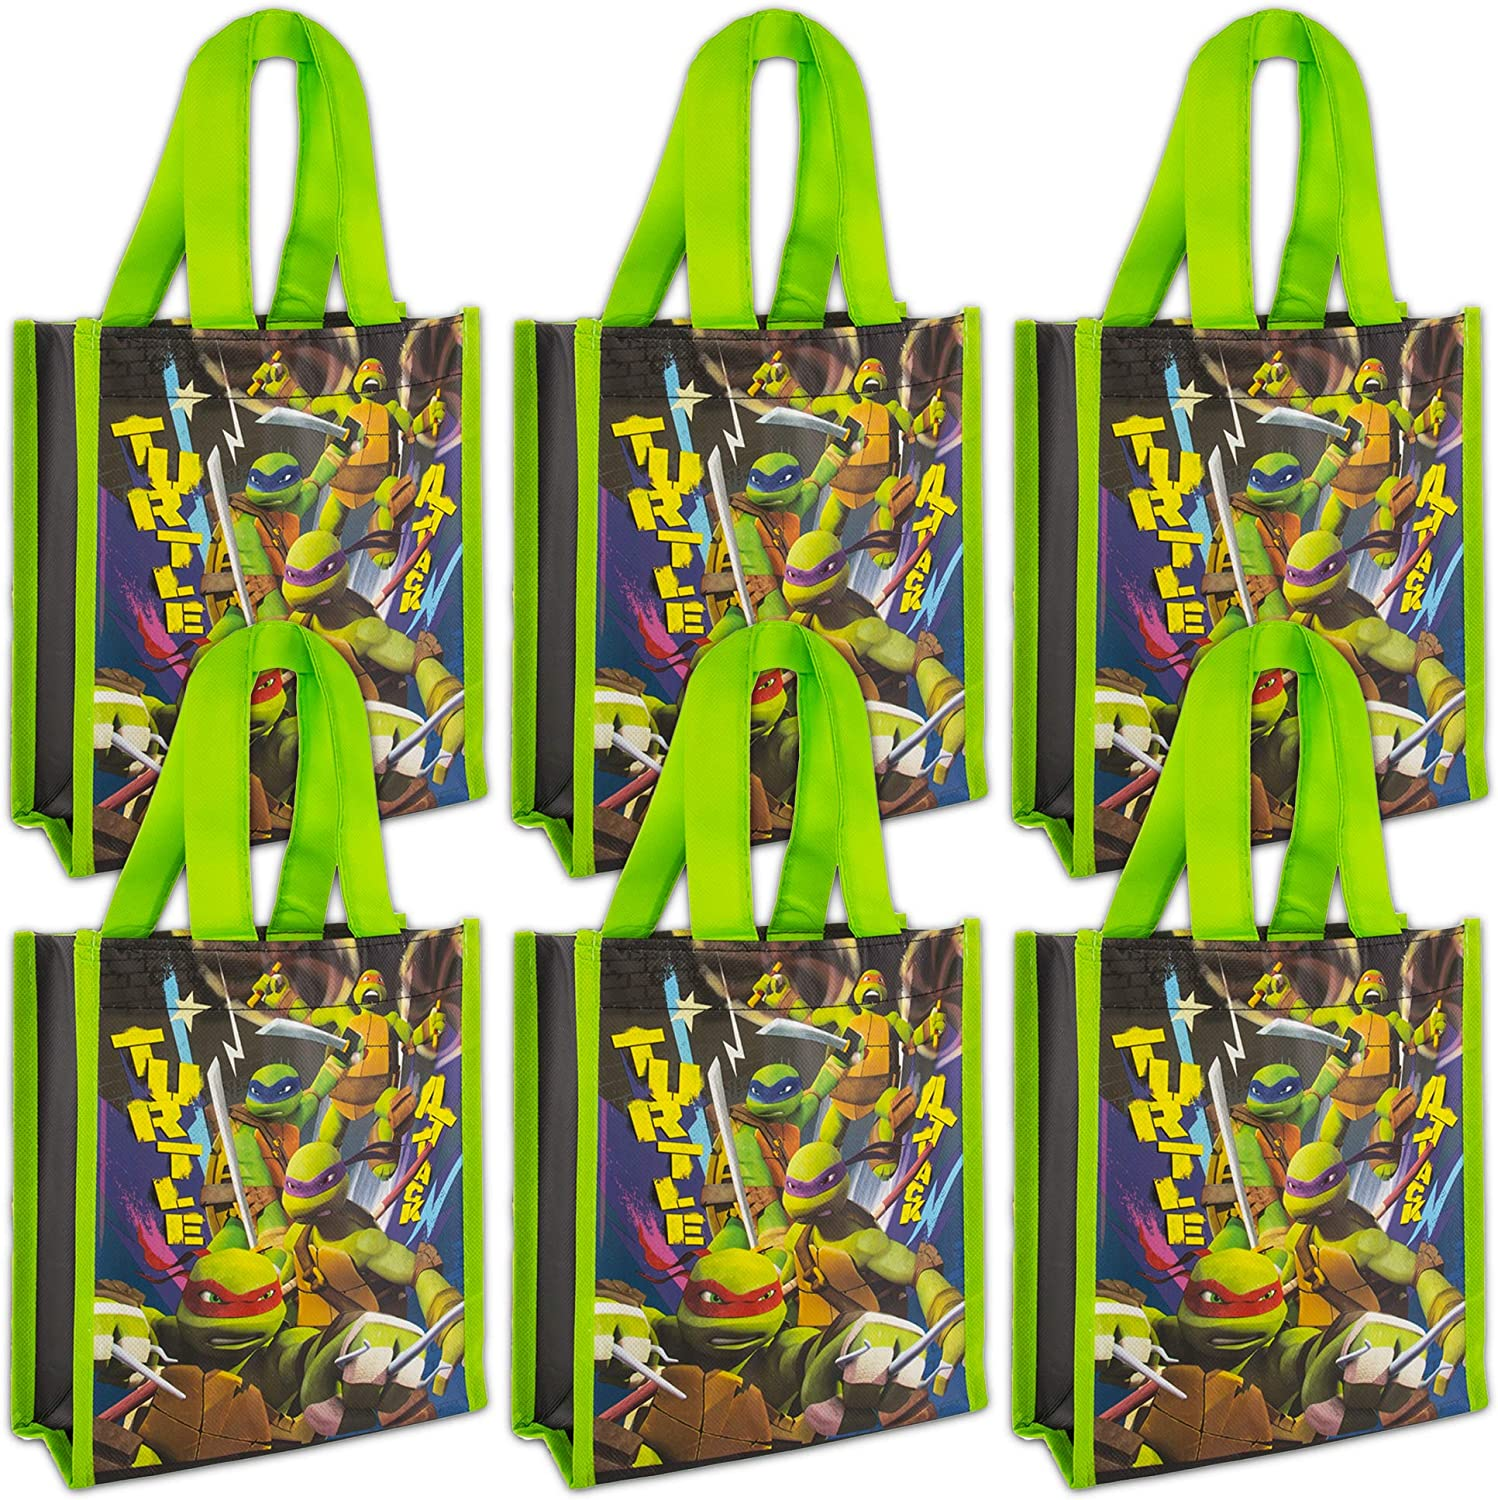 NINJA TURTLES Teenage Mutant Party Bags Mini Reusable Tote Bags ~ 6 Pack of TMNT Party Bags for Gifts, Groceries, Halloween Trick or Treat Bags and More (TMNT Merchandise)